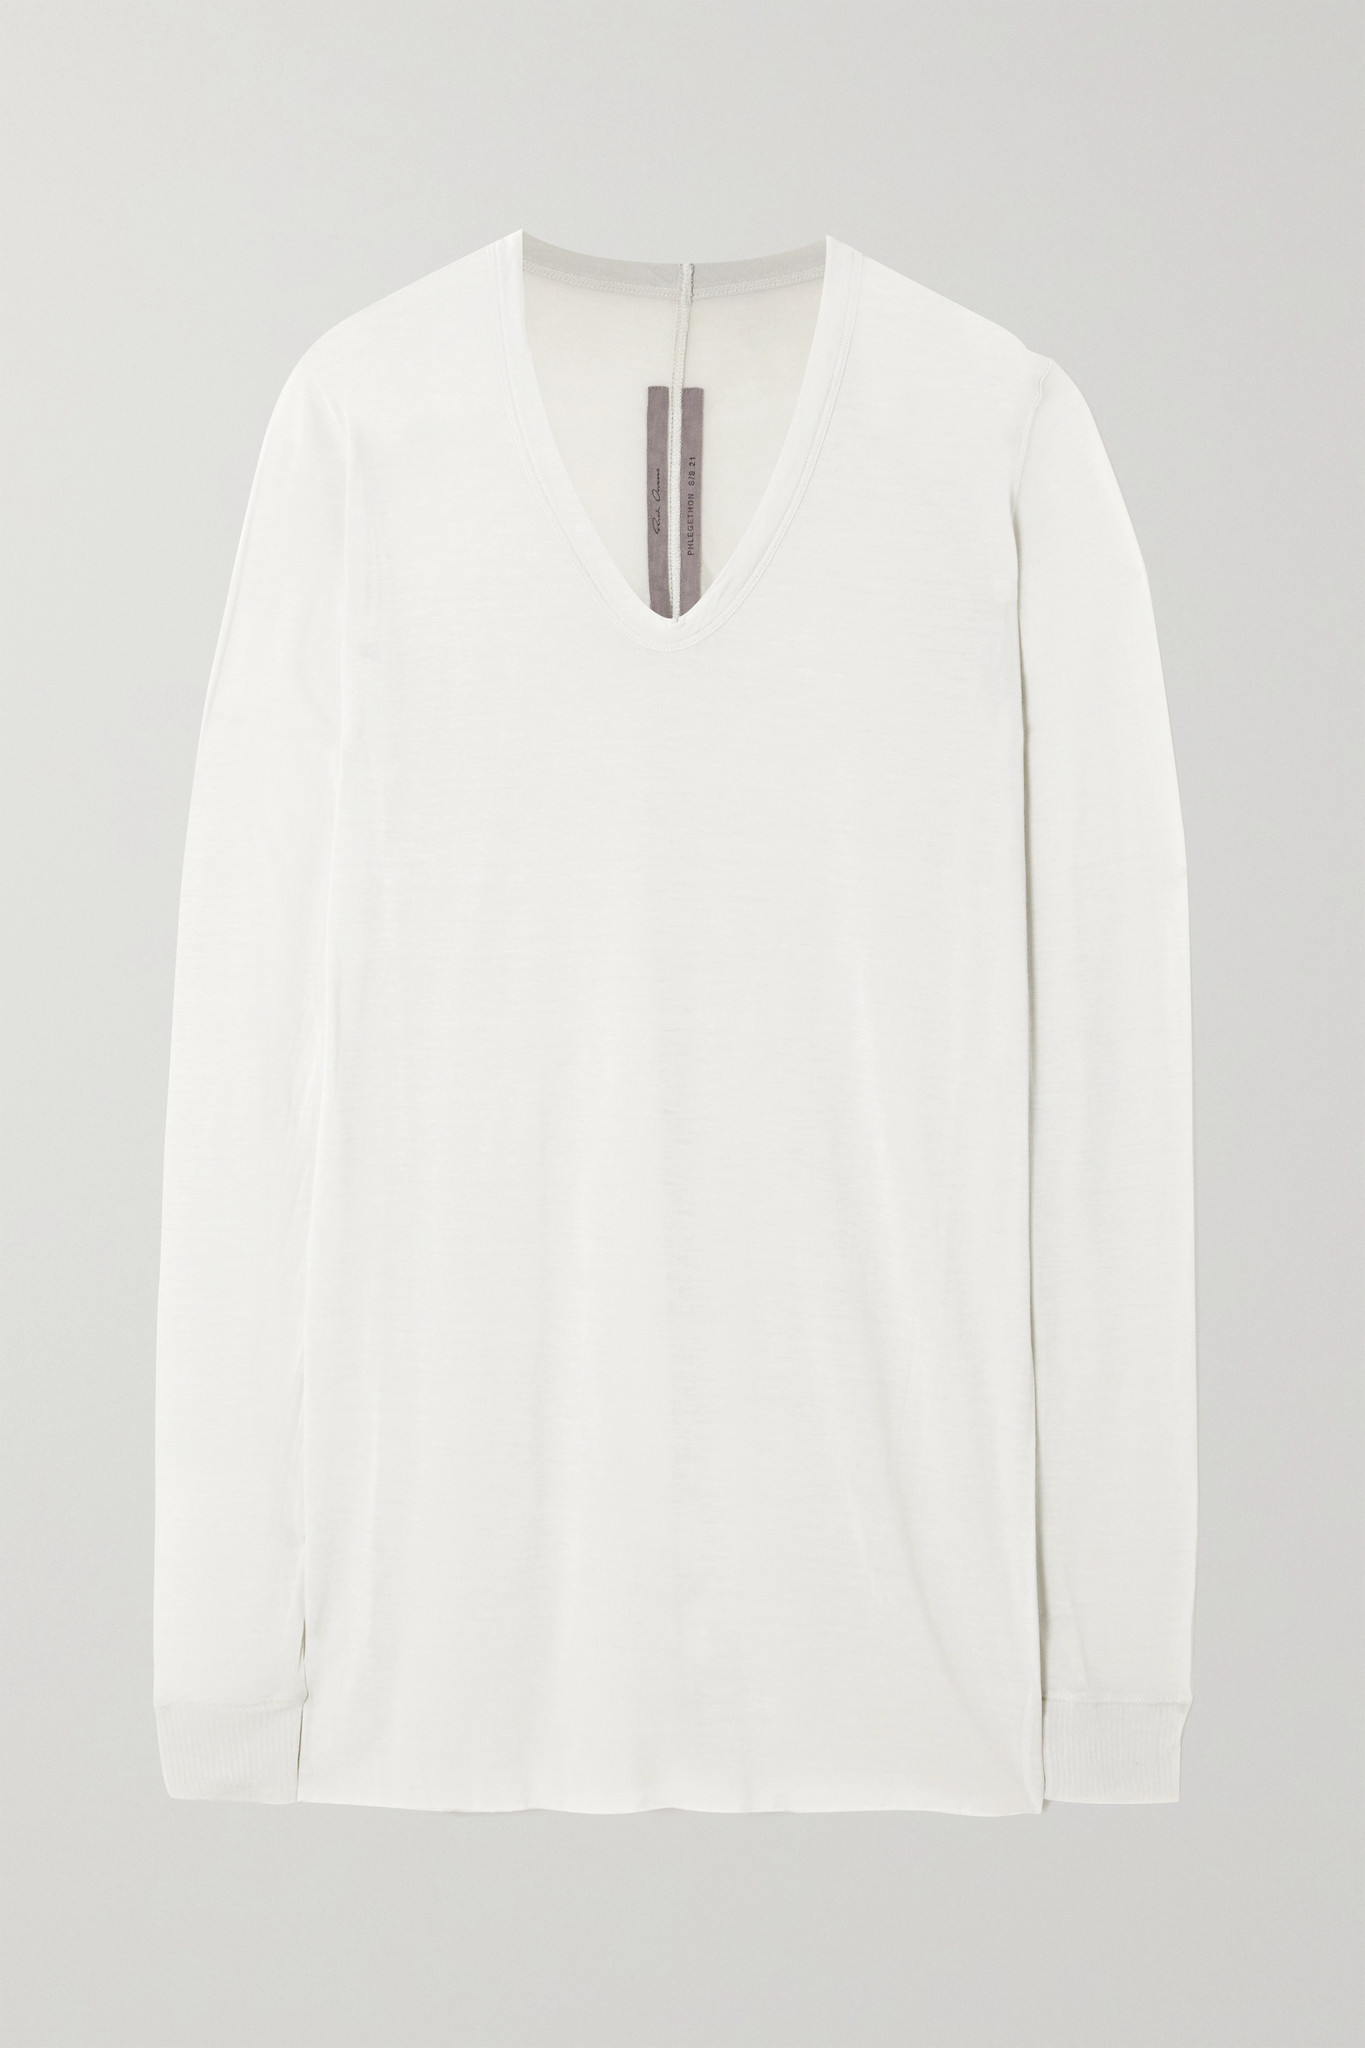 RICK OWENS - Jersey T-shirt - Cream - IT40